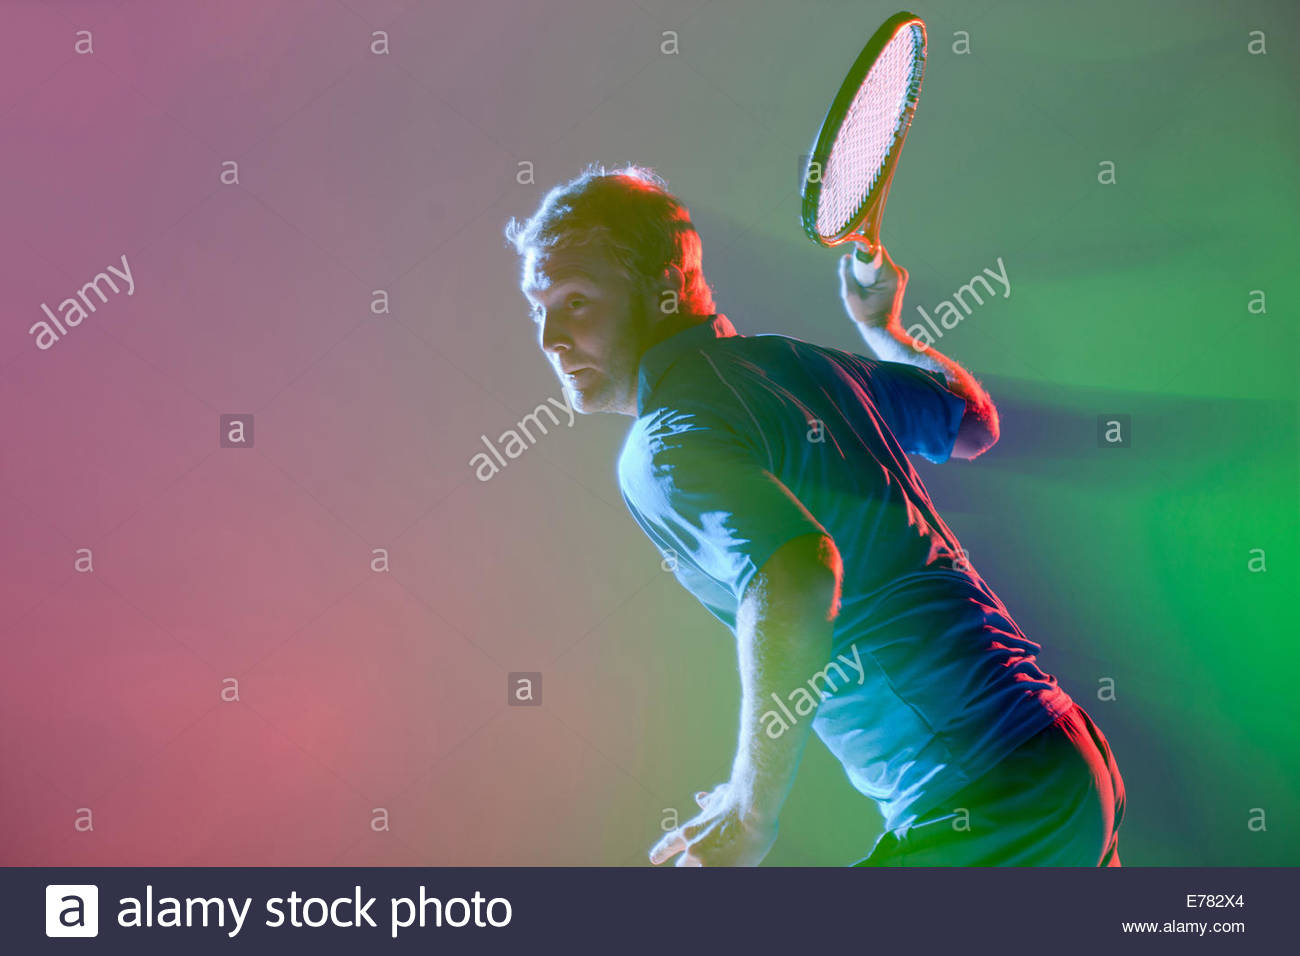 Tennis player swinging racket Photo Stock